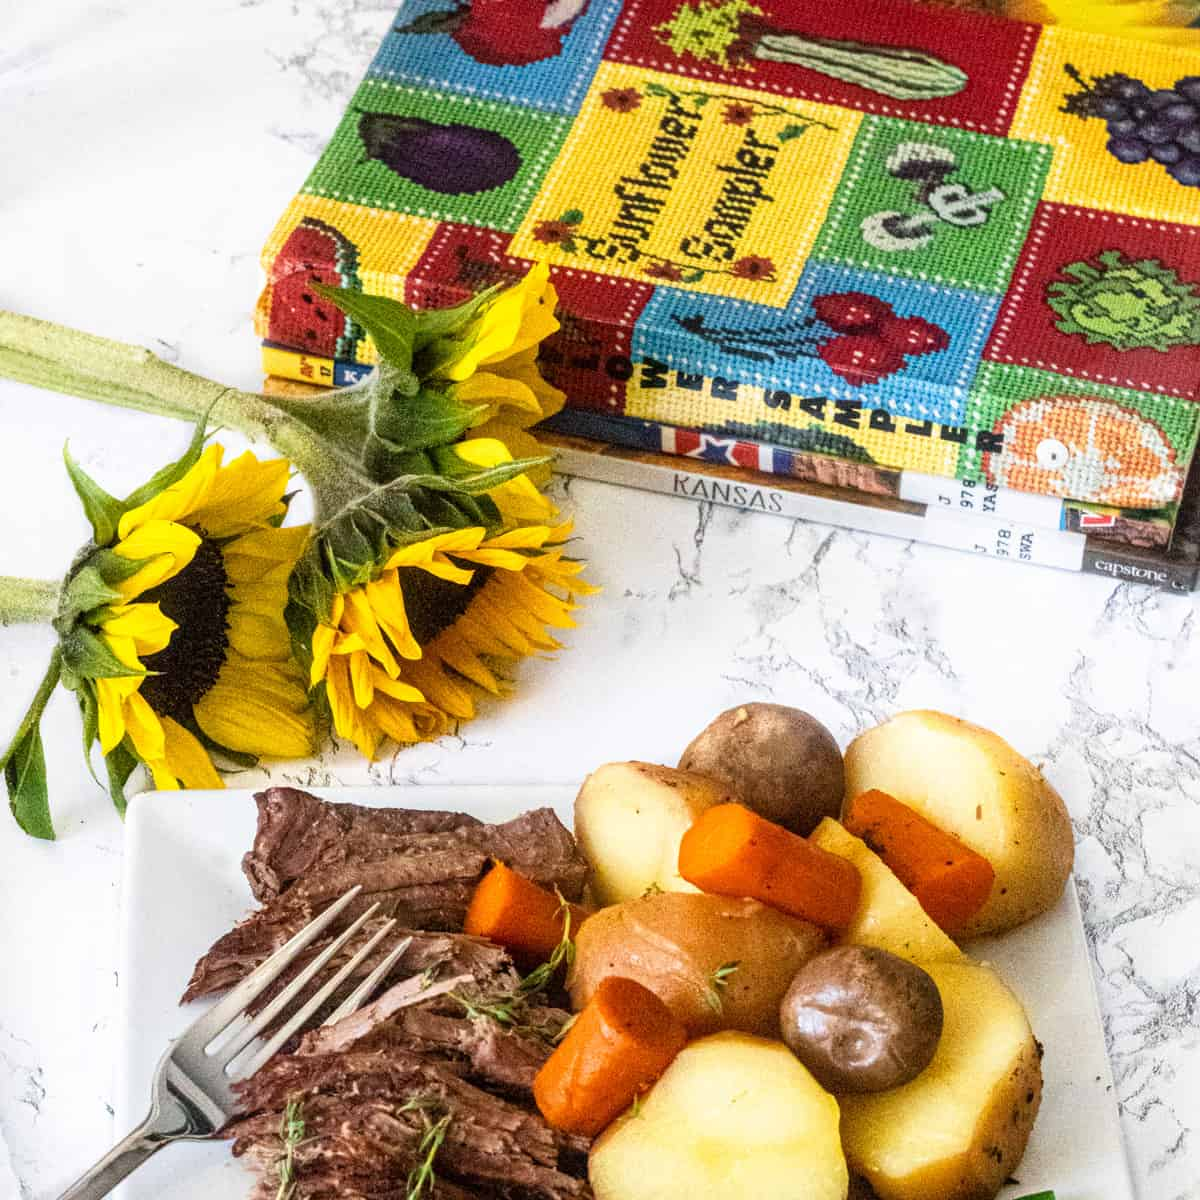 Plate of roast beef with carrots, potatoes & mushrooms. Sunflowers and cookbooks in background.